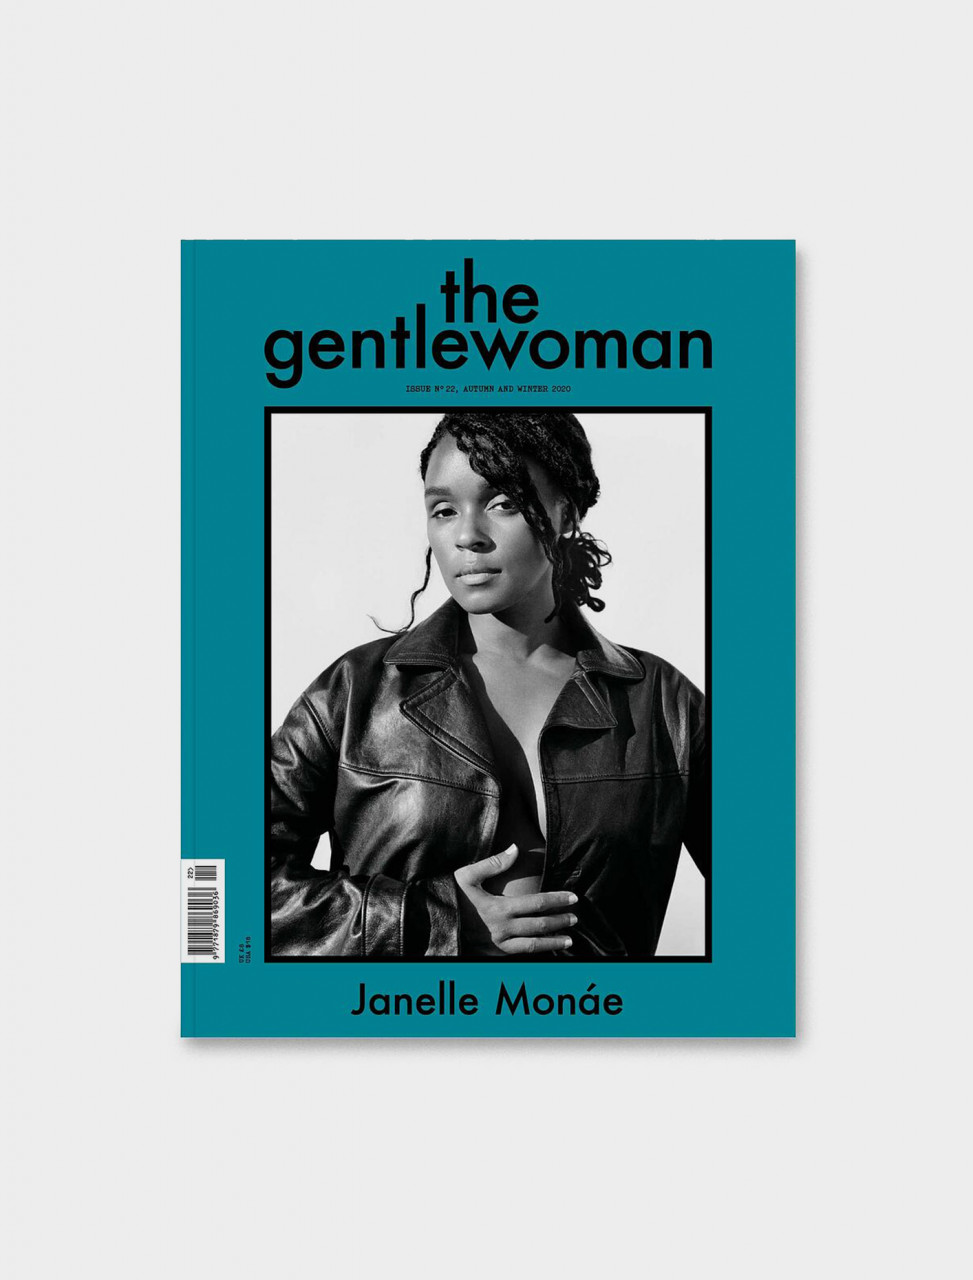 977187986903622 THE GENTLEWOMAN 22